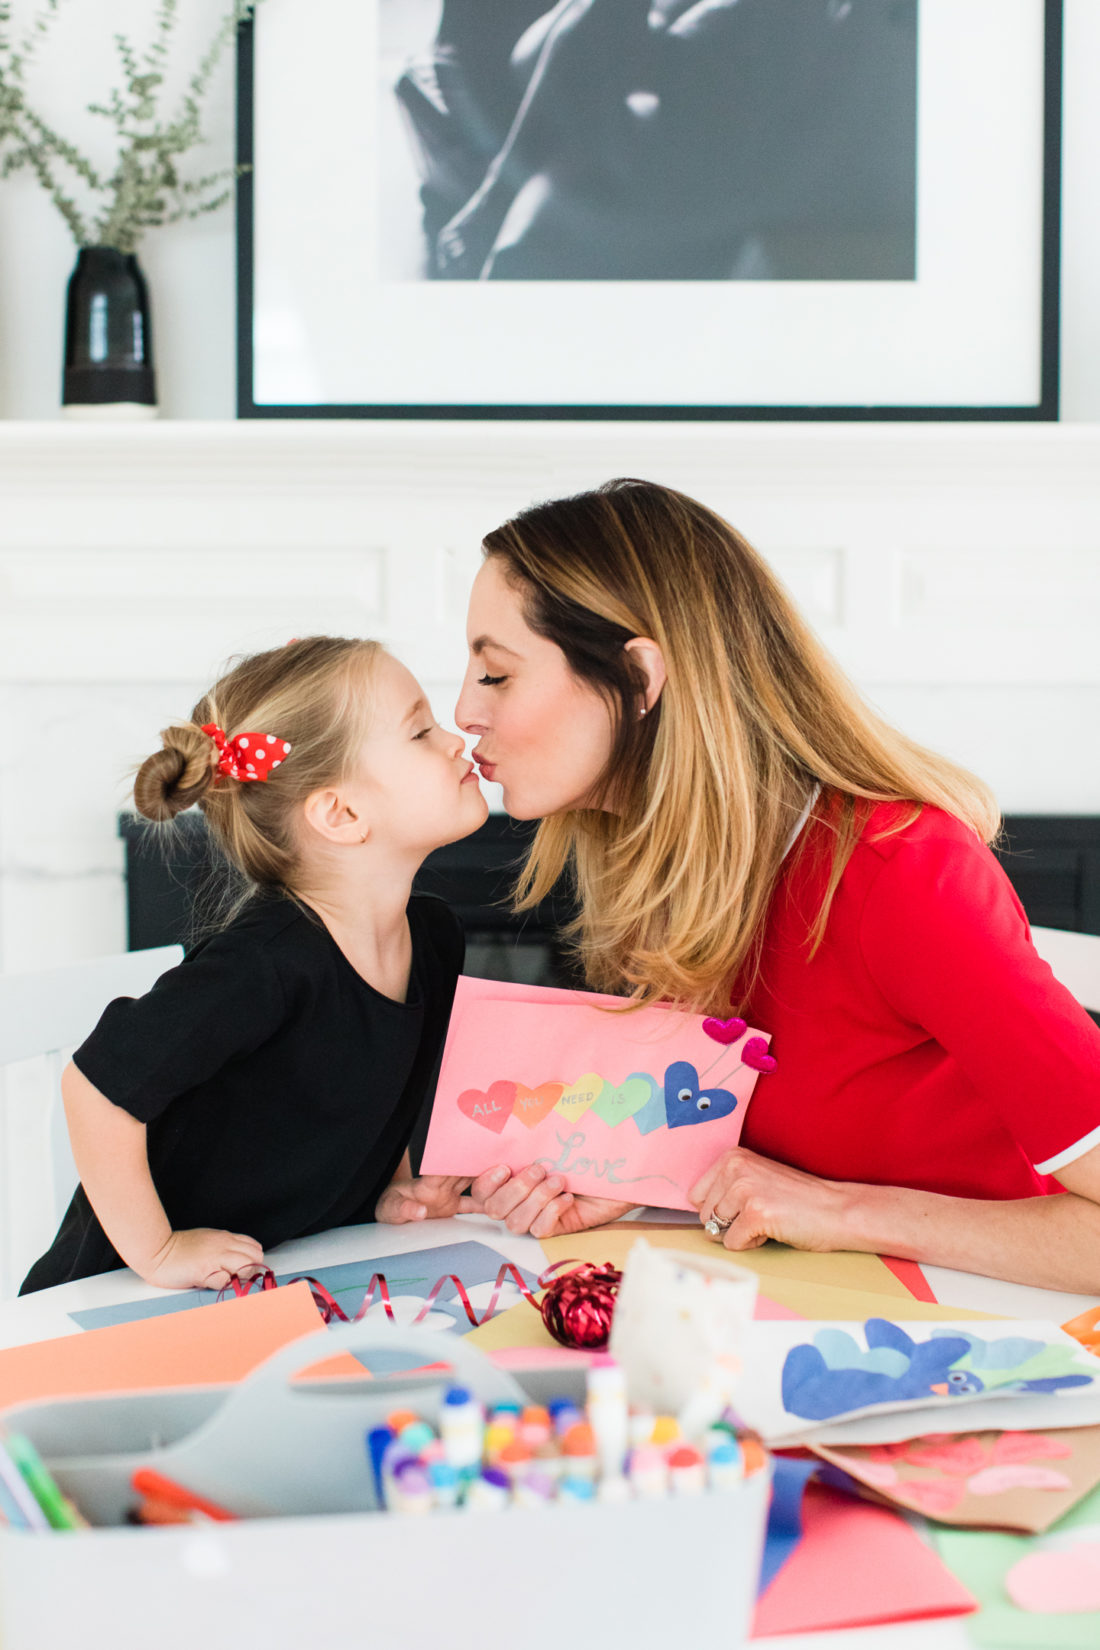 Eva AMurri Martino kisses three year old daughter Marlowe while they make Valentine's Day cards together